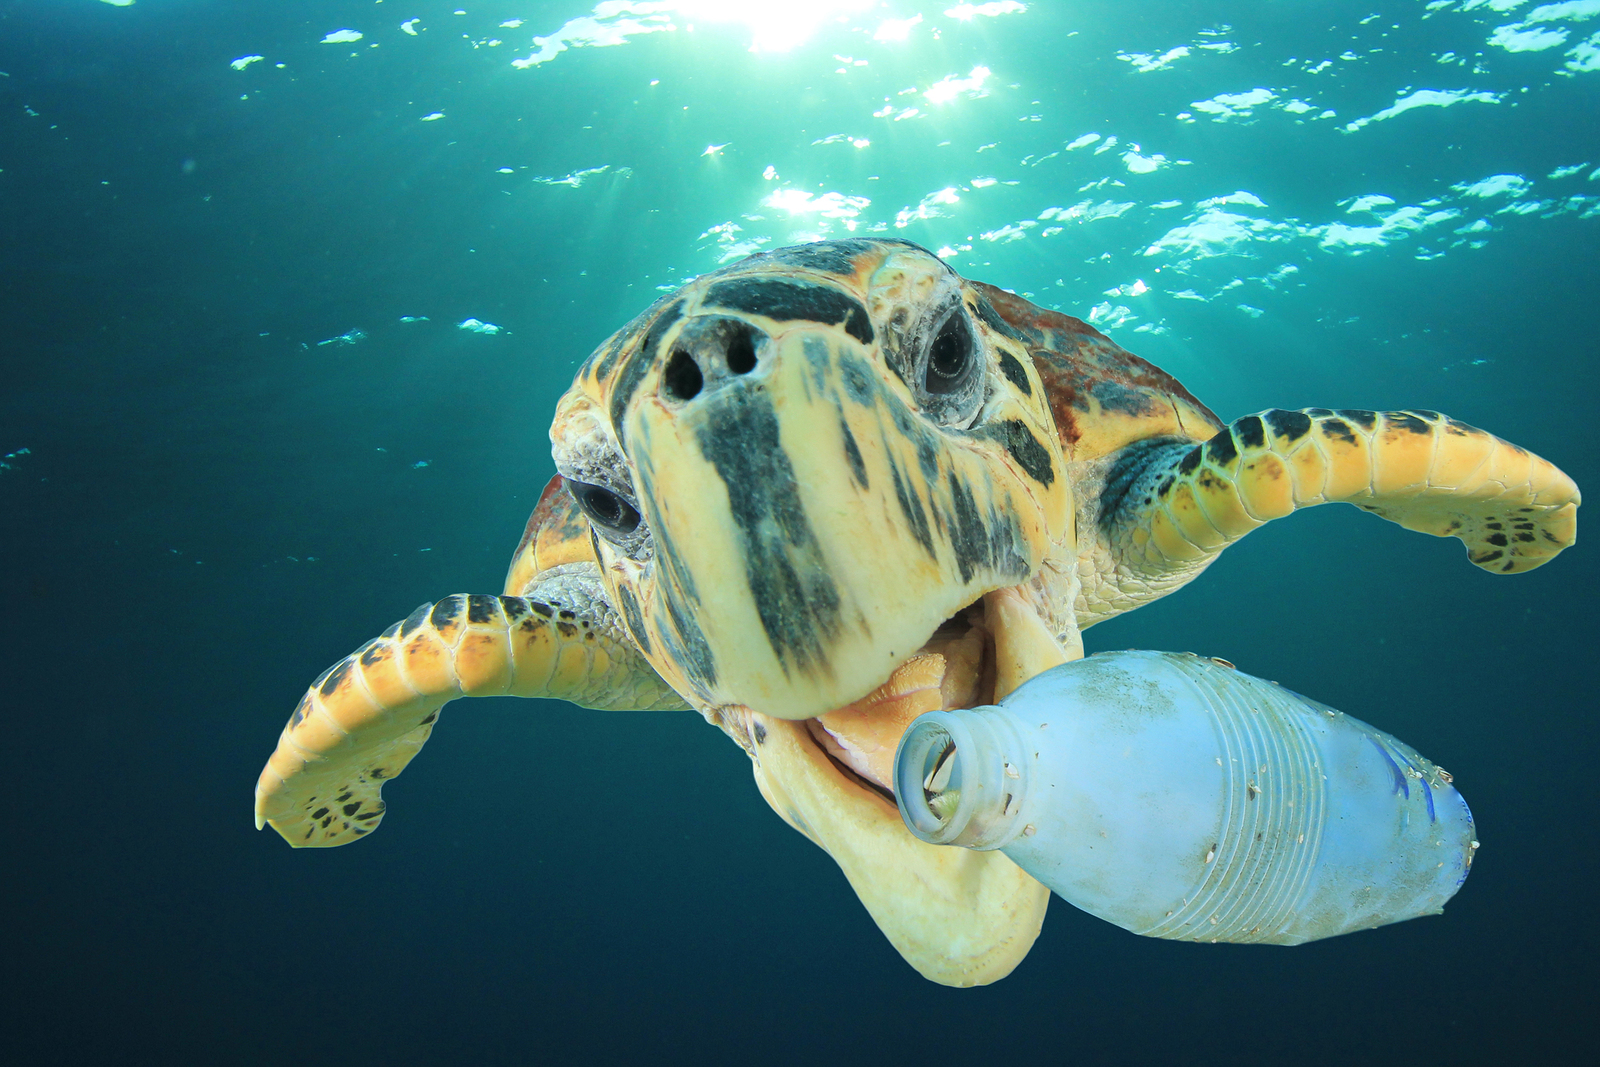 Point: Want Less Ocean Plastic Pollution? Make Less ...